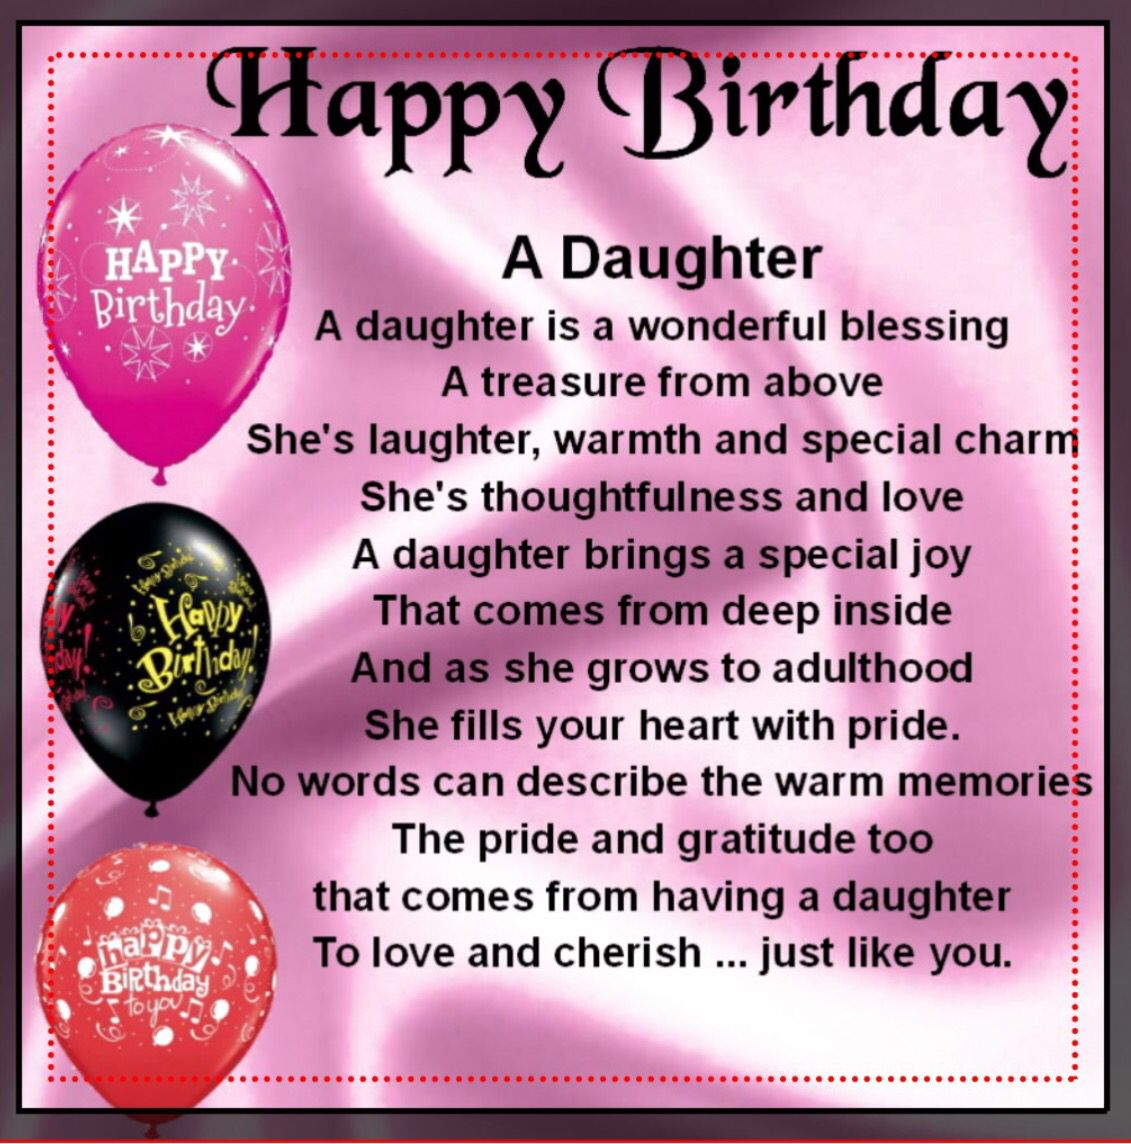 Happy Birthday Daughter Birthday Wishes For Aunt Birthday